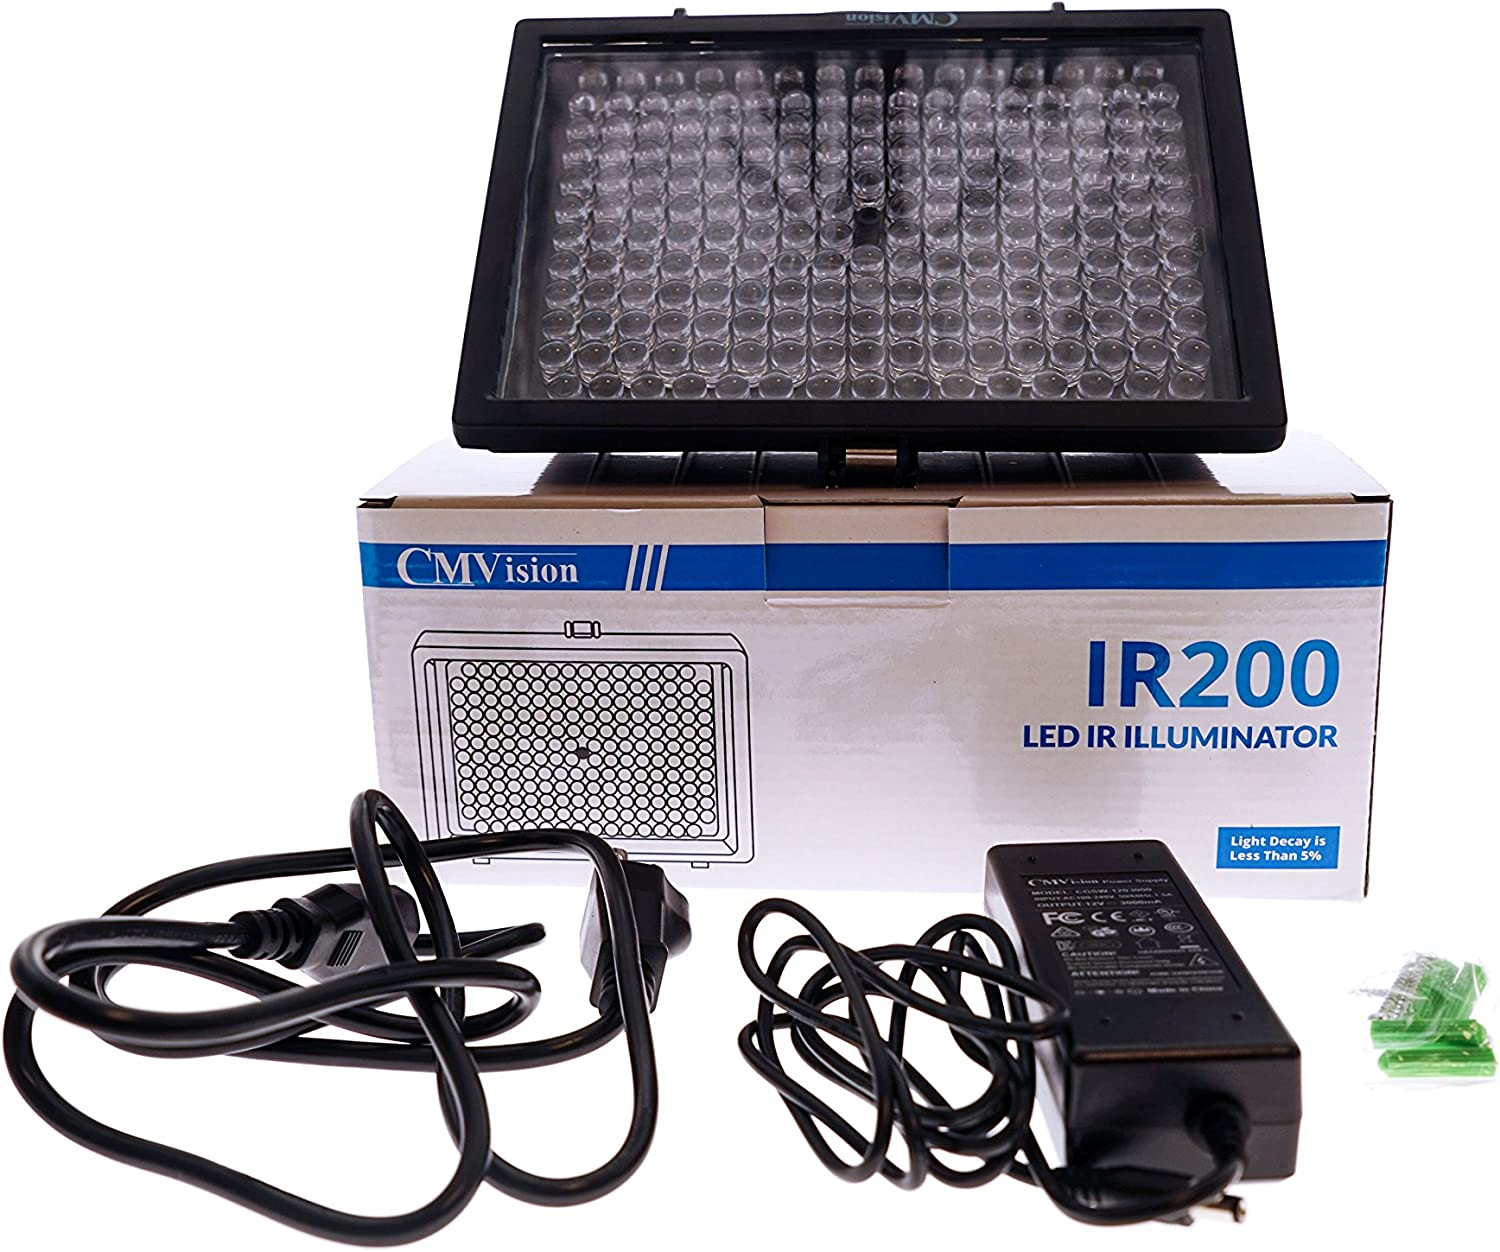 Renewed CMVision IR110-114 LED Indoor//Outdoor Long Range 200-300ft IR Illuminator With Free 2A 12VDC Adaptor ( New Version has LUX ON /& OFF Switch